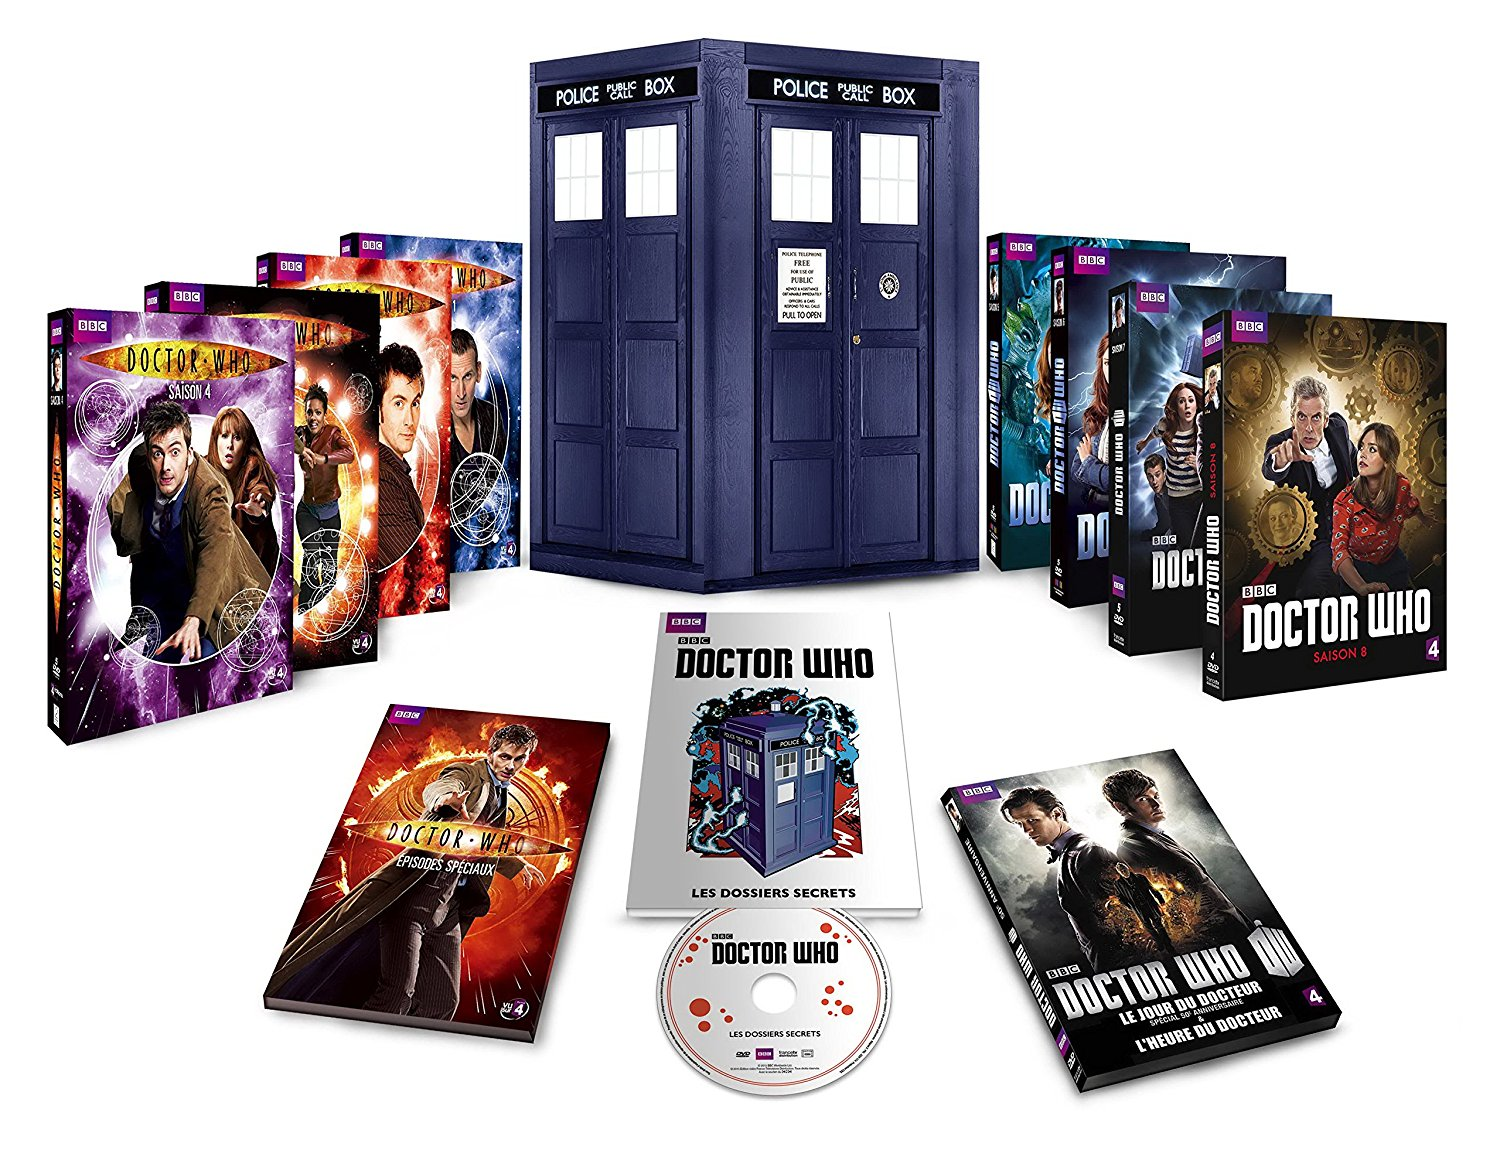 coffret-dvd-tardis-doctor-who-tardis-1